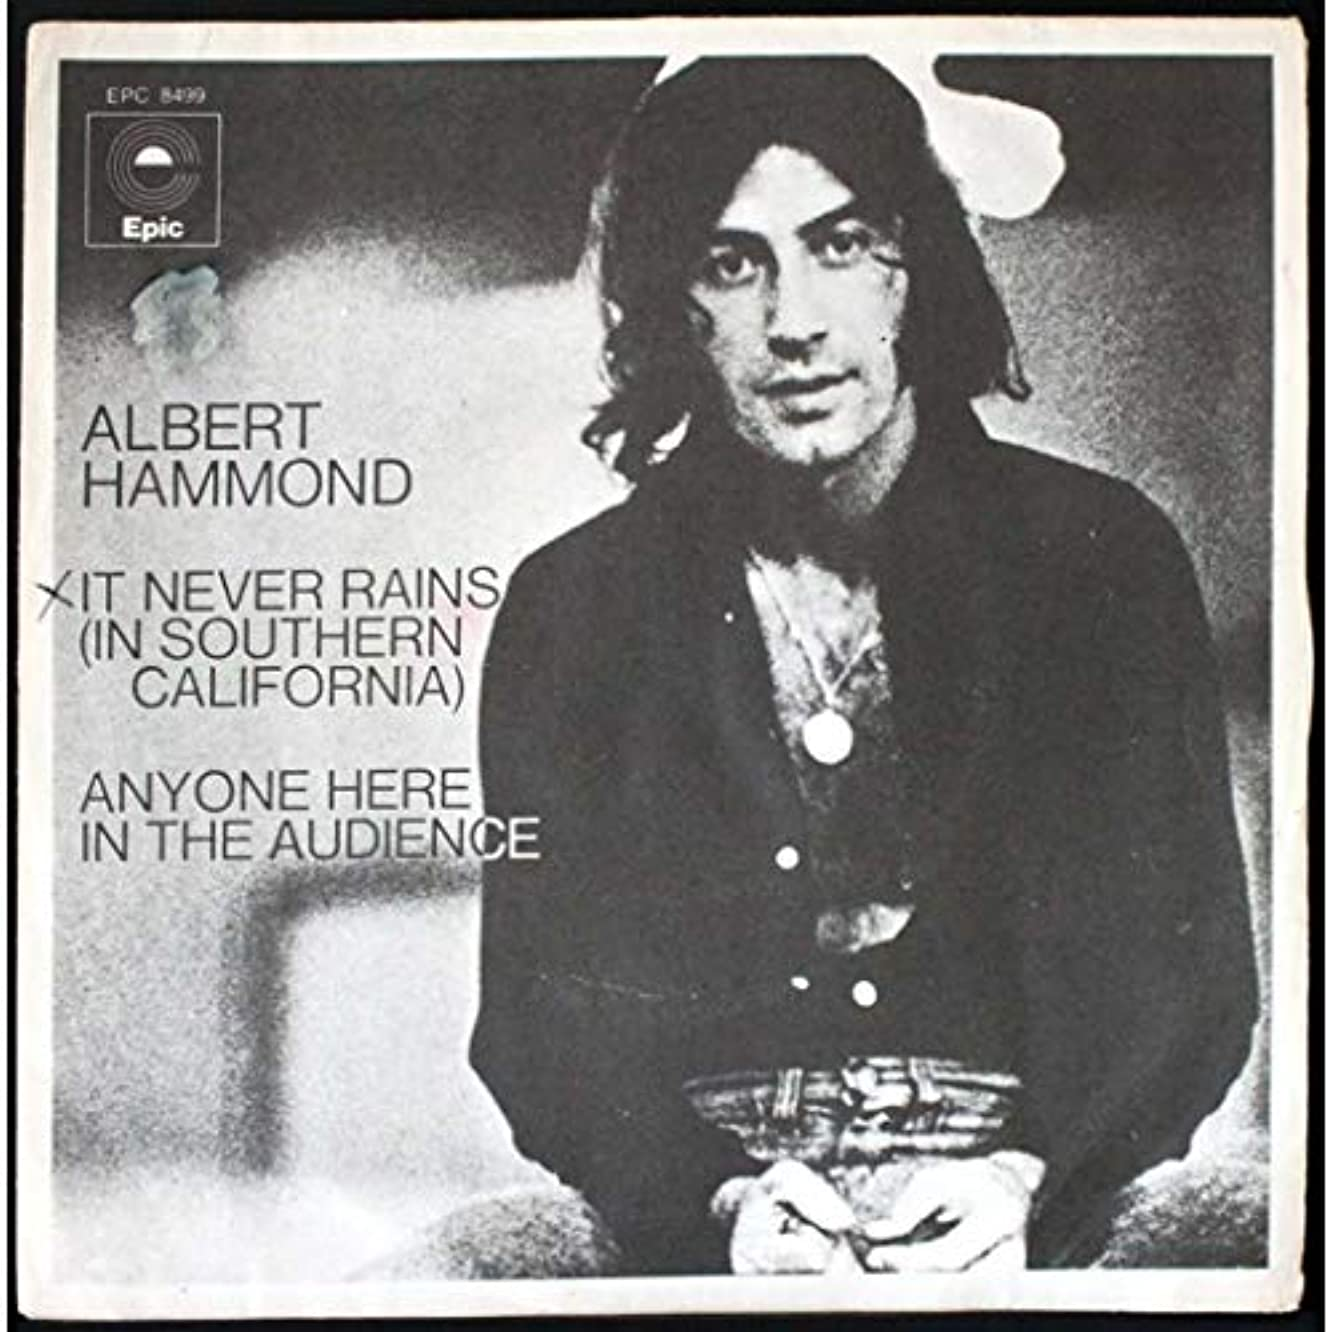 Albert Hammond - It Never Rains In Southern California - Epic - EPC S 8499